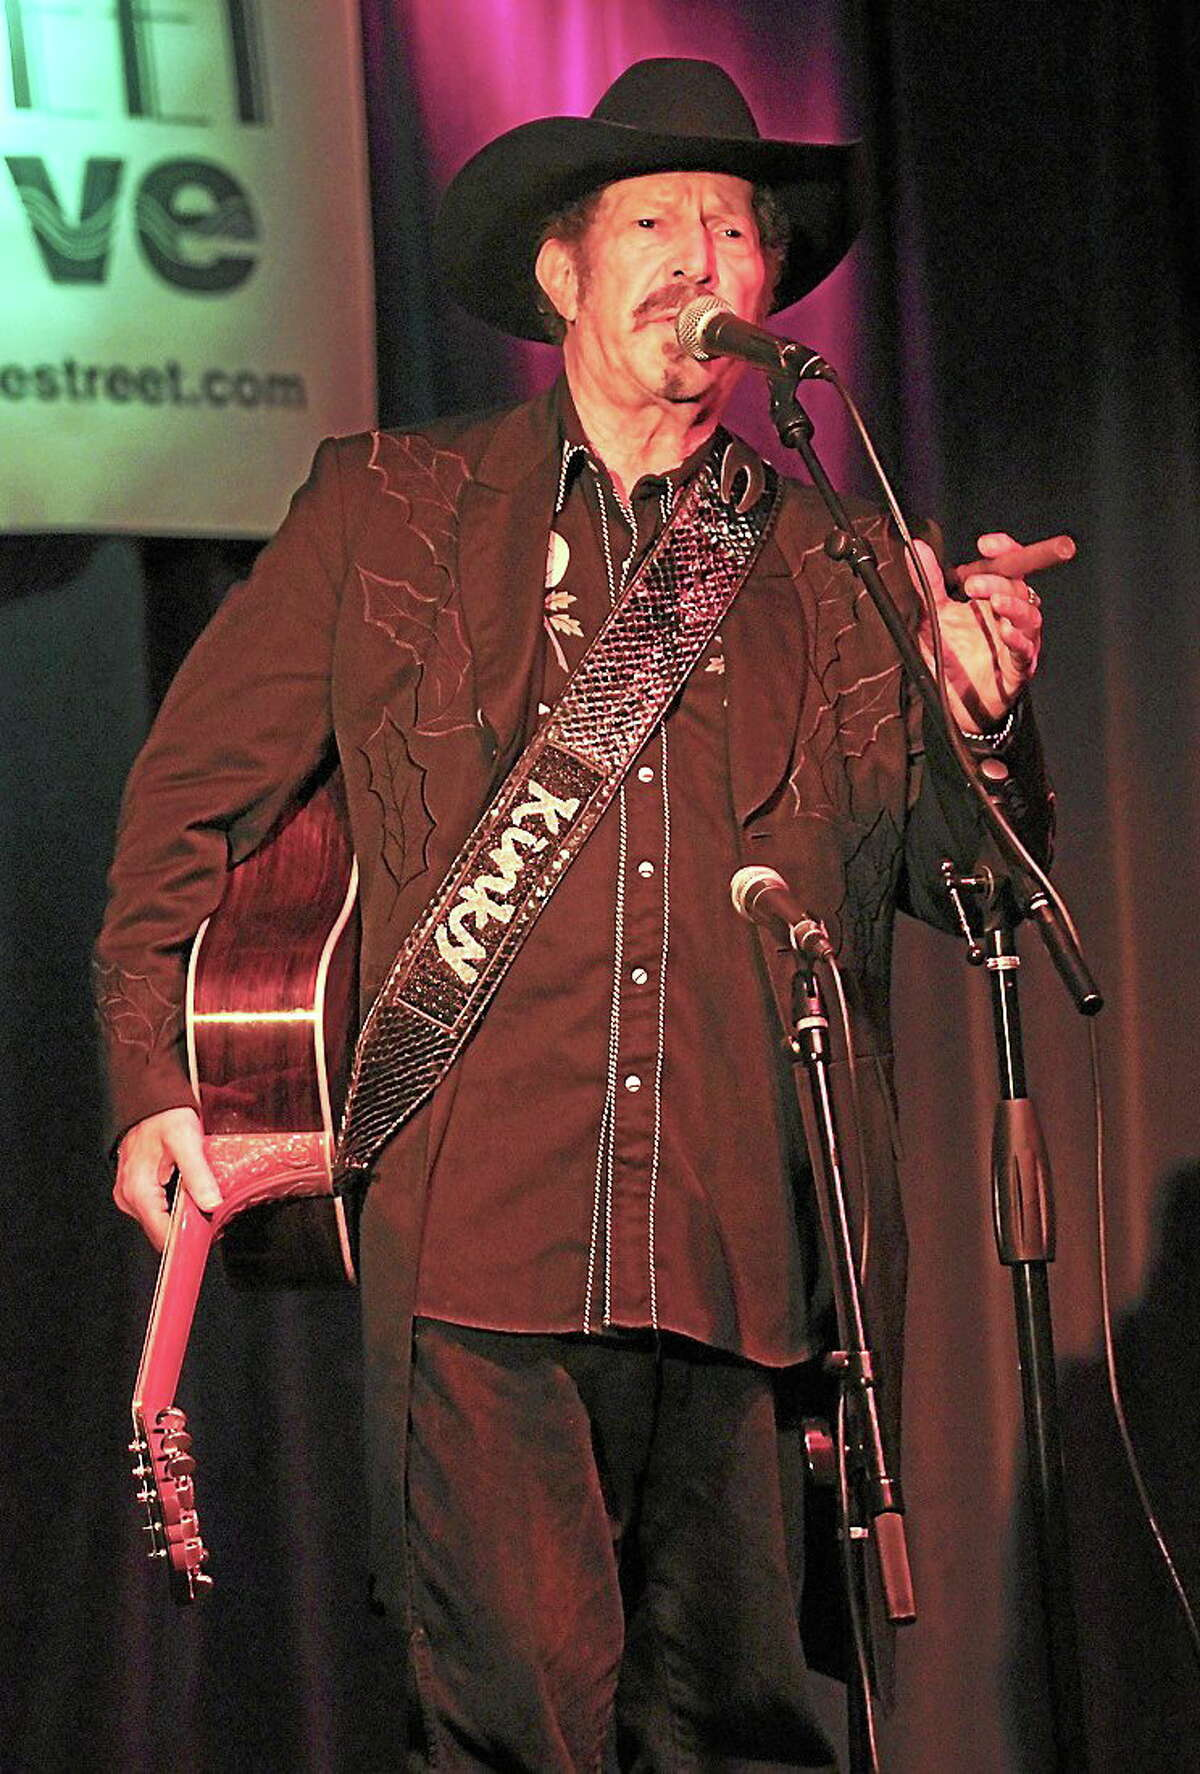 Photo by John Atashian Texas Country singer, songwriter, novelist, humorist, politician and former columnist for Texas Monthly is shown performing on stage during a